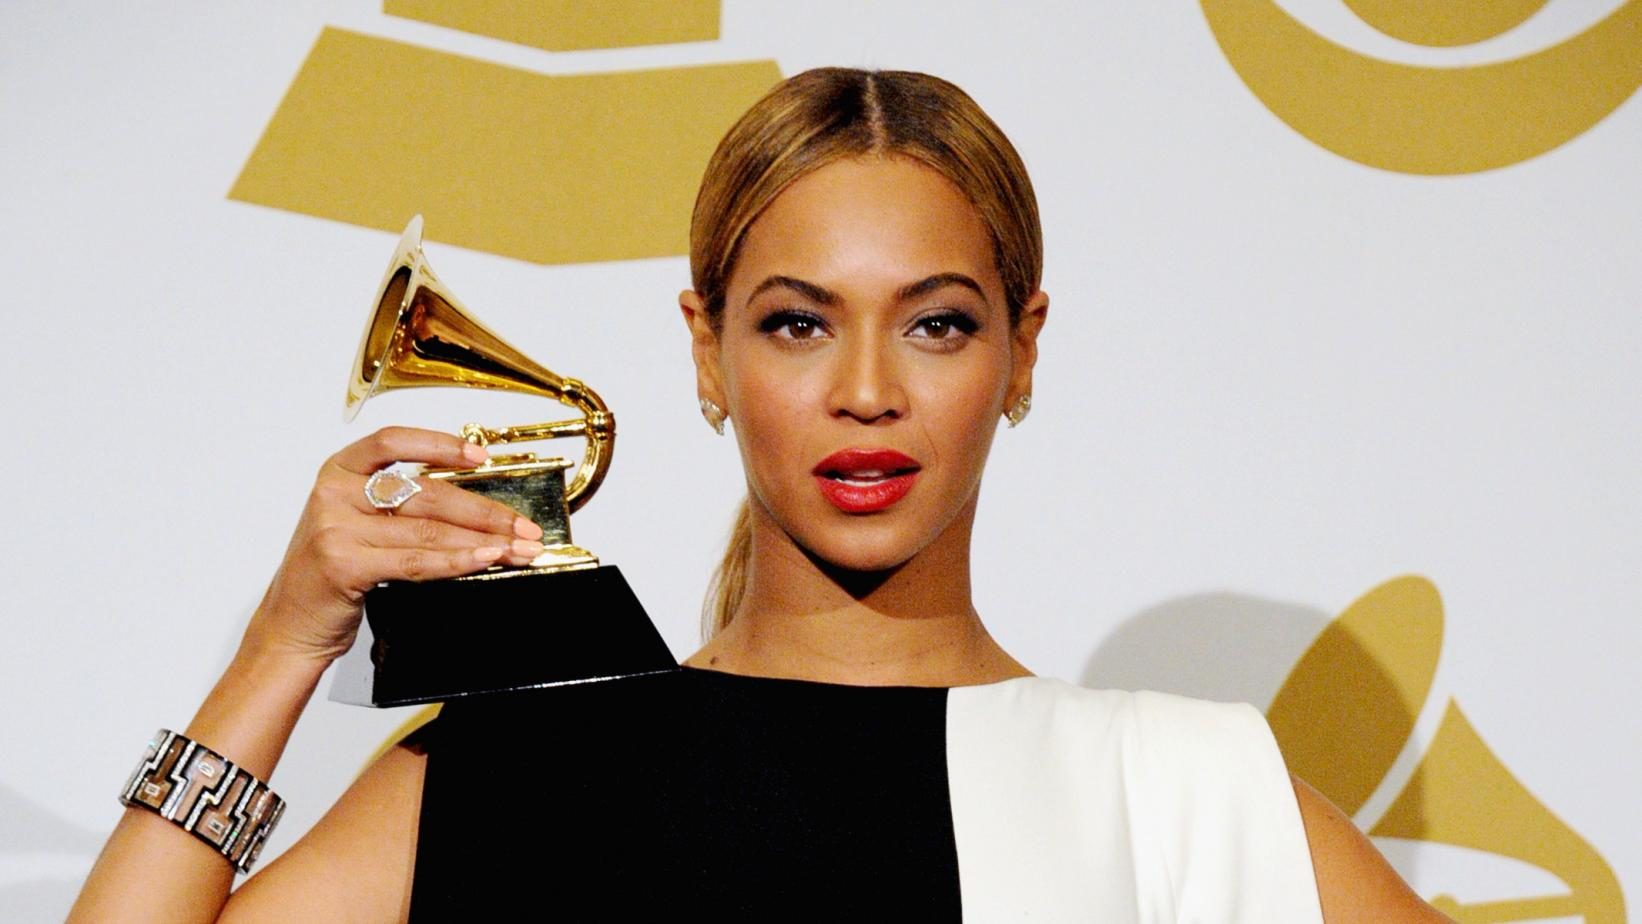 2021 Grammys Postponed in Response to Ongoing COVID-19 Pandemic